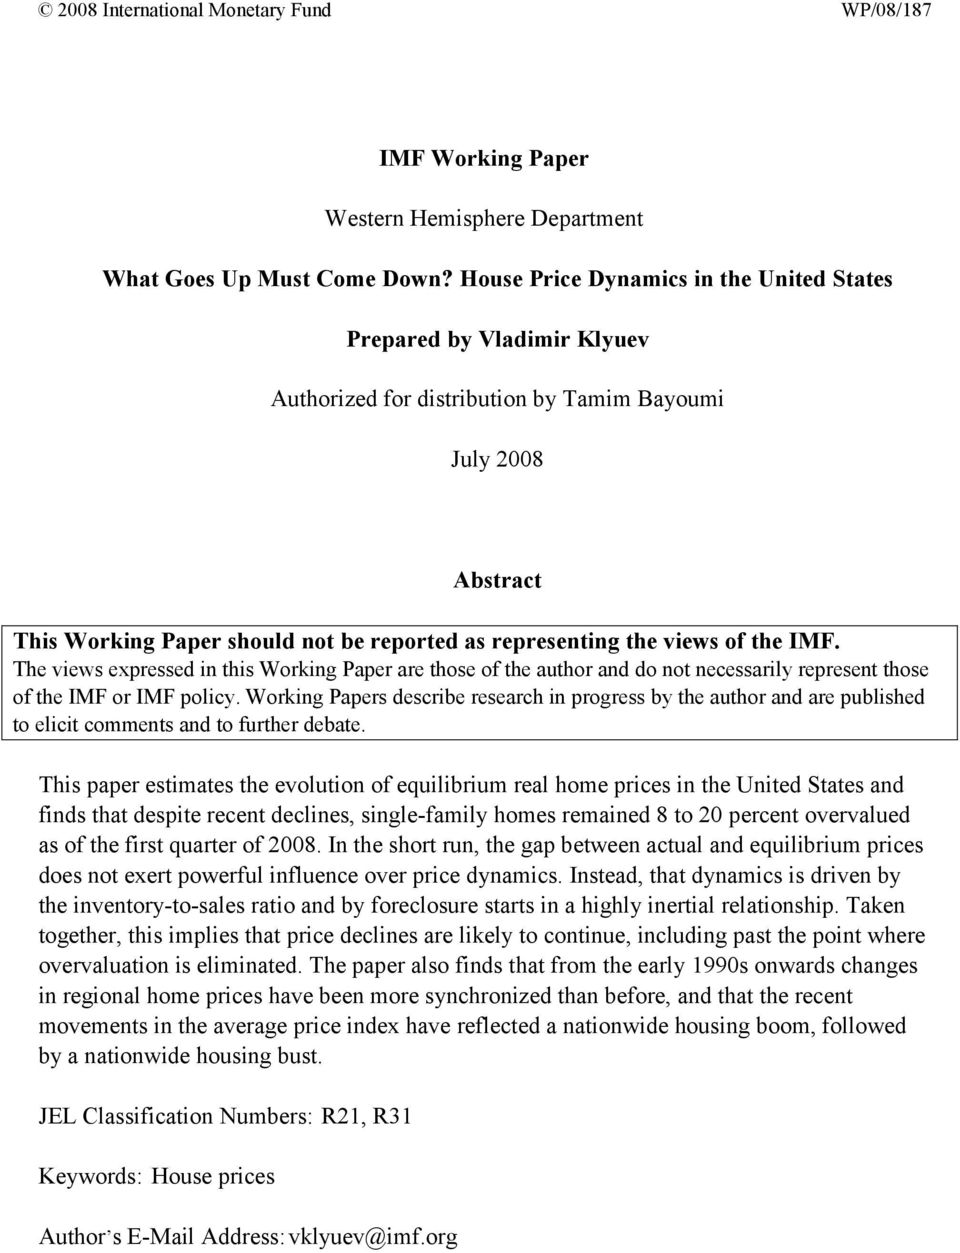 of the IMF. The views expressed in this Working Paper are those of the author and do not necessarily represent those of the IMF or IMF policy.